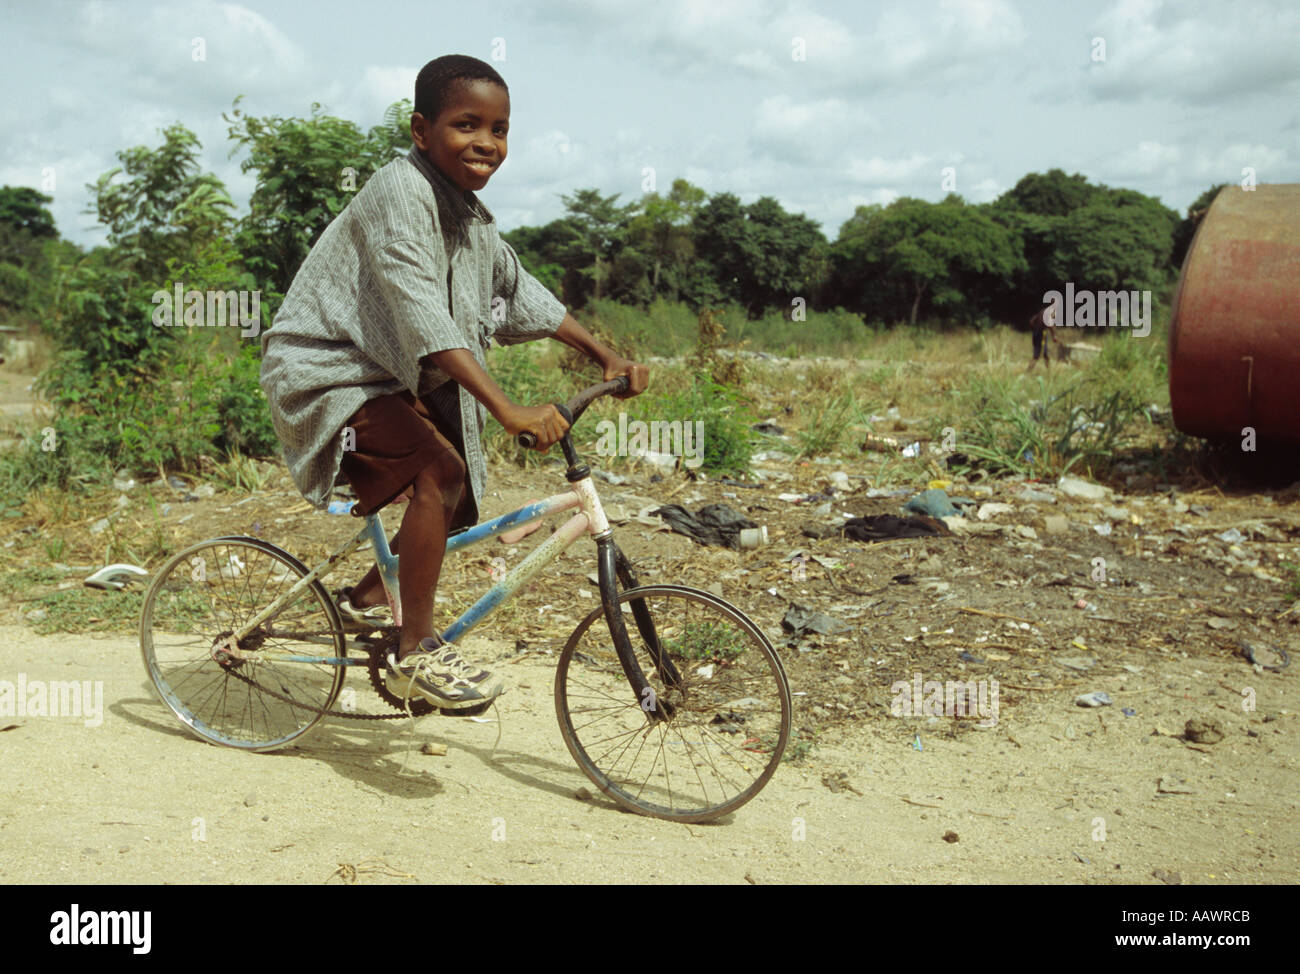 Liberian Boy On A Poor Bike With No Tyres Stock Photo Royalty